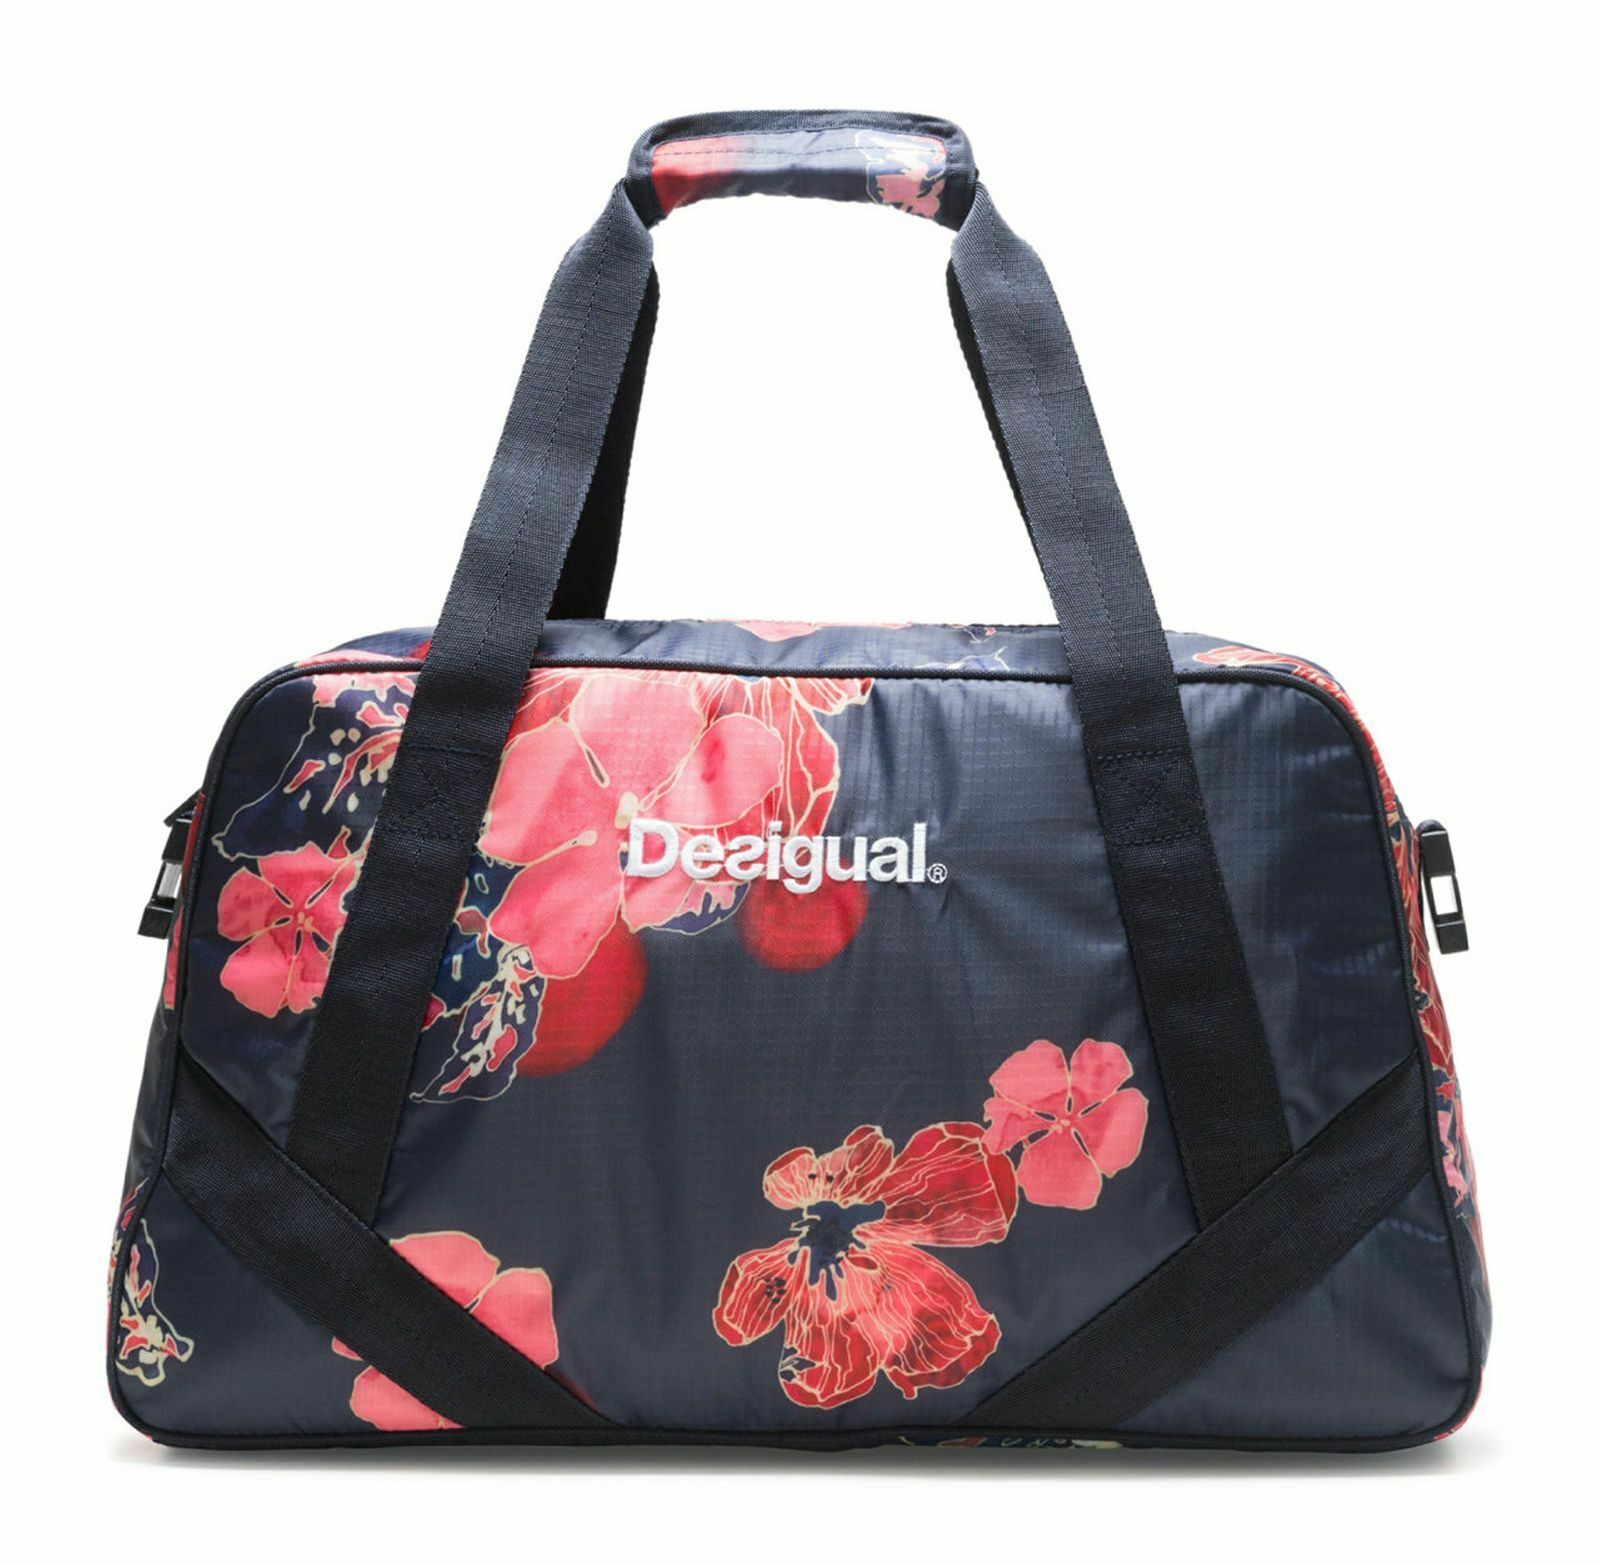 Desigual Scarlet Bloom Carry Shoulder Bag Sporttasche Tasche Peacoat